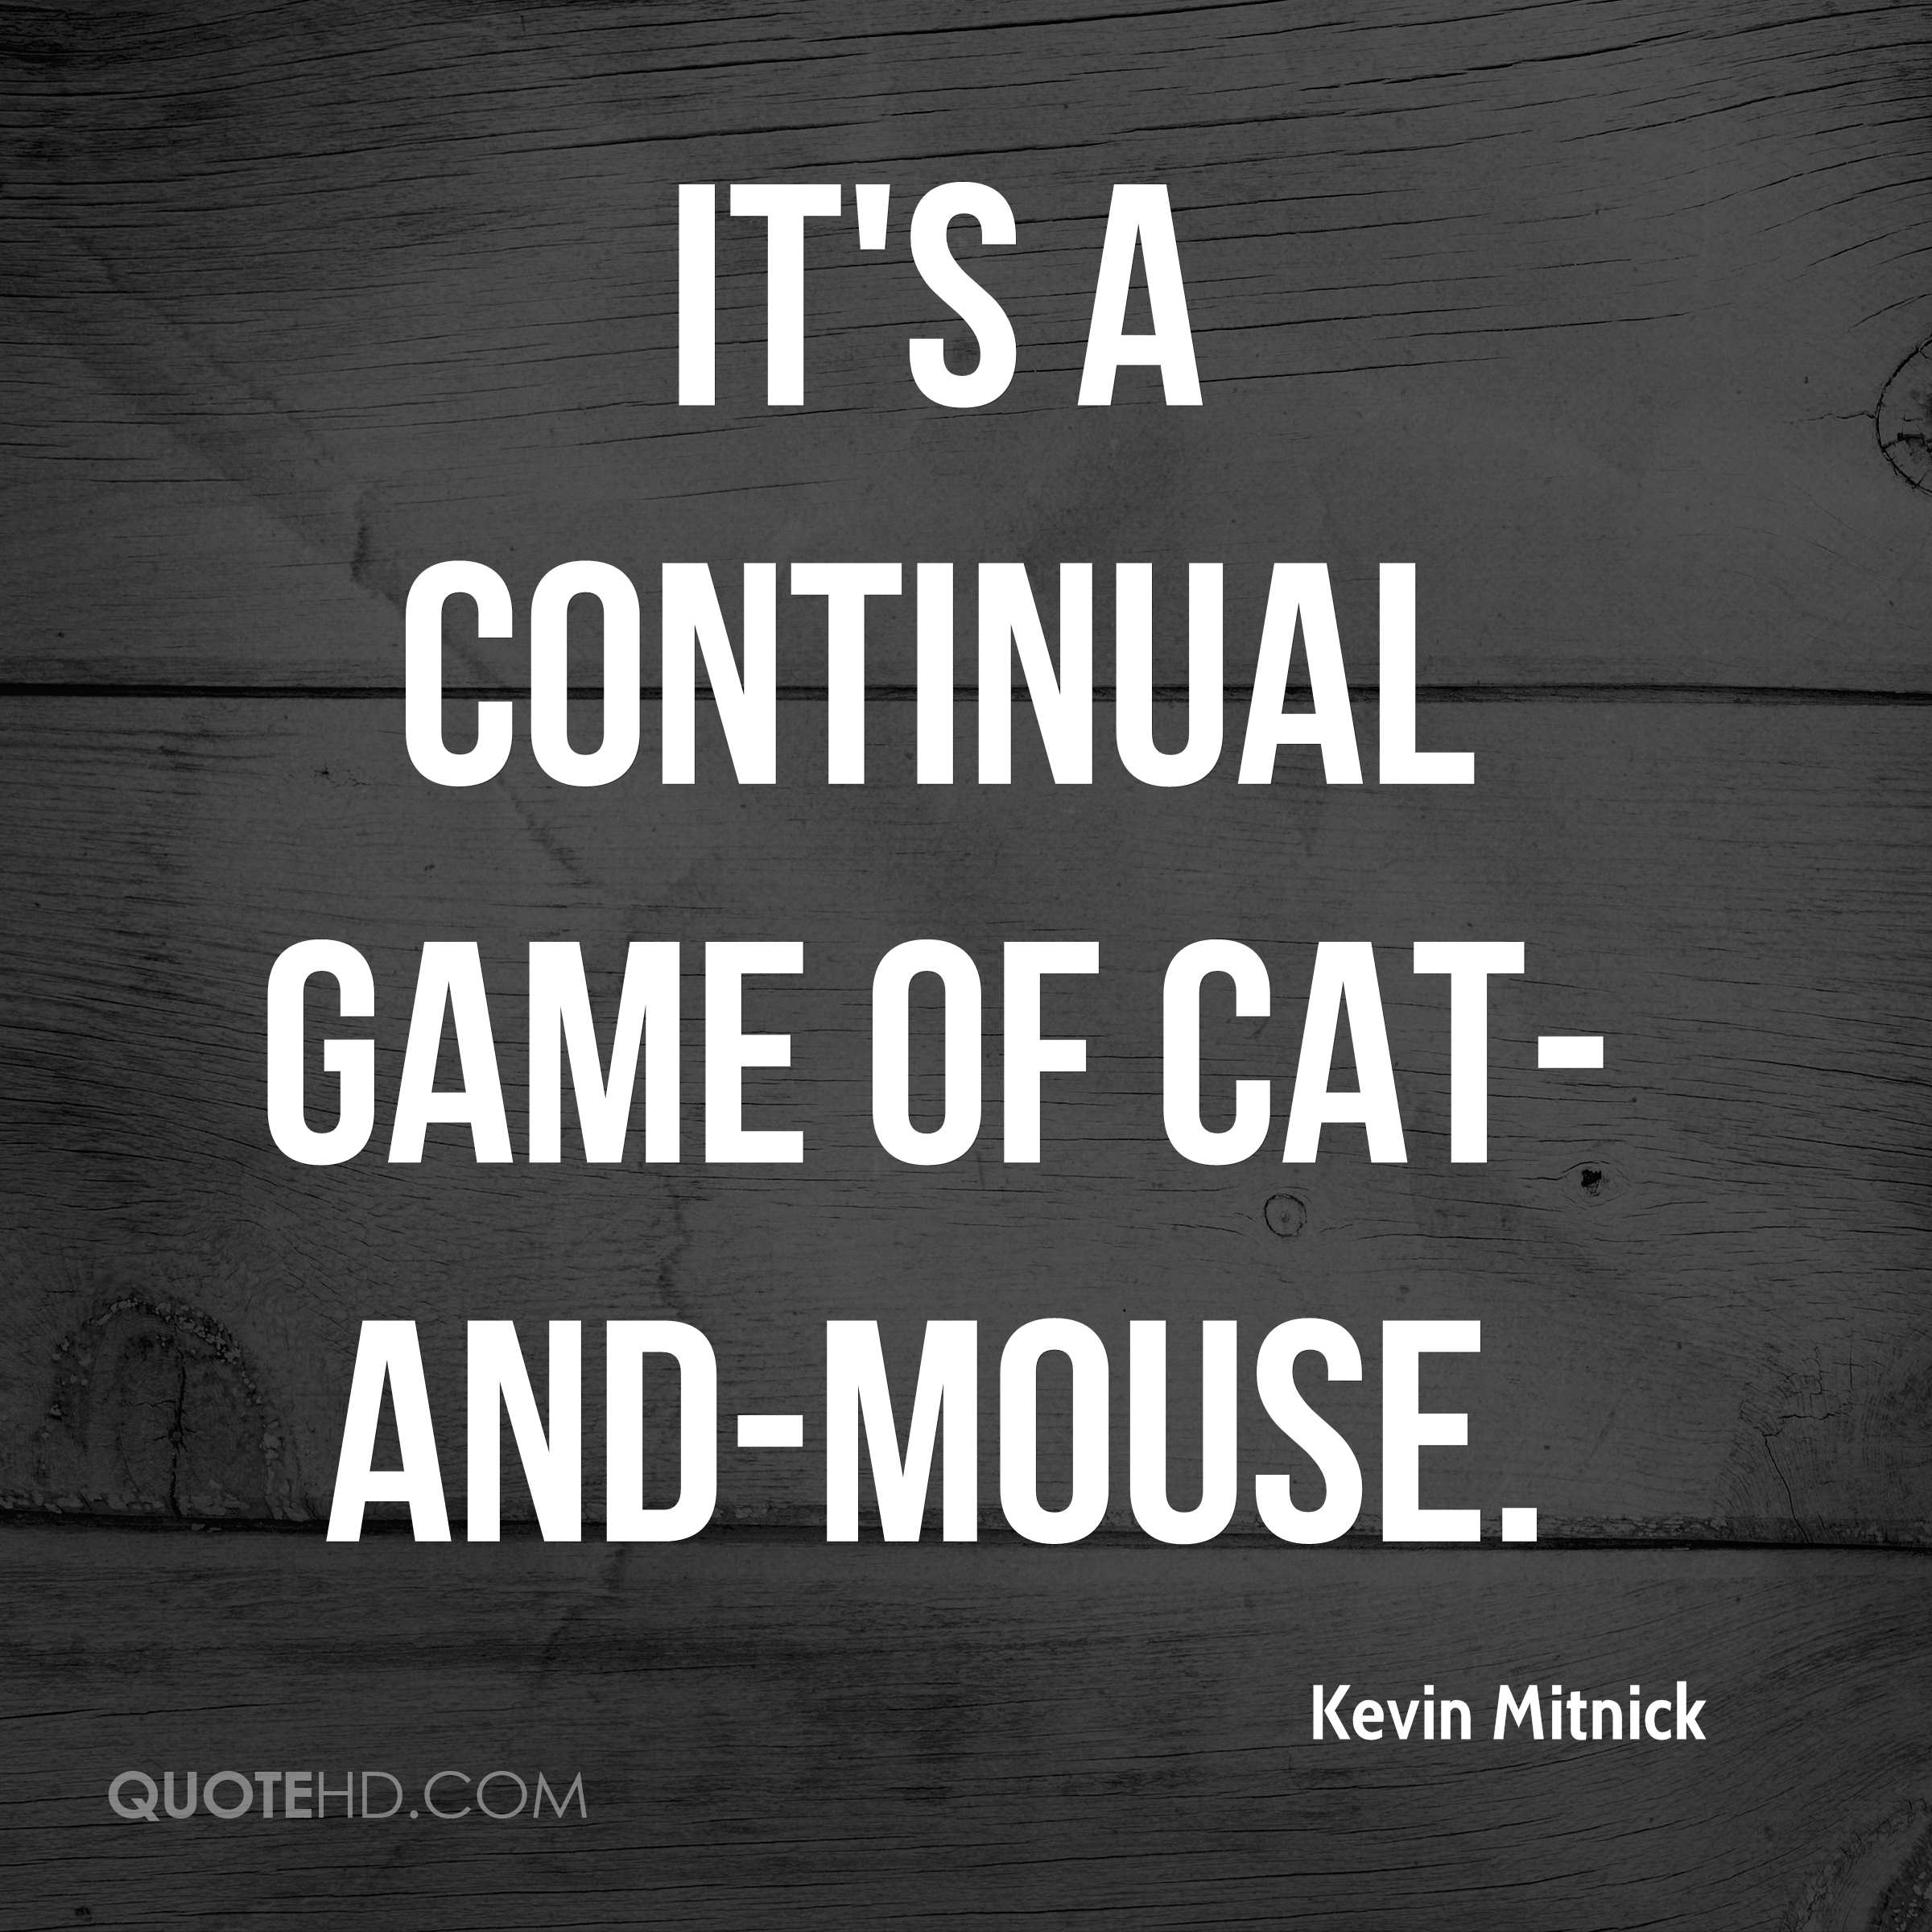 It's a continual game of cat-and-mouse.